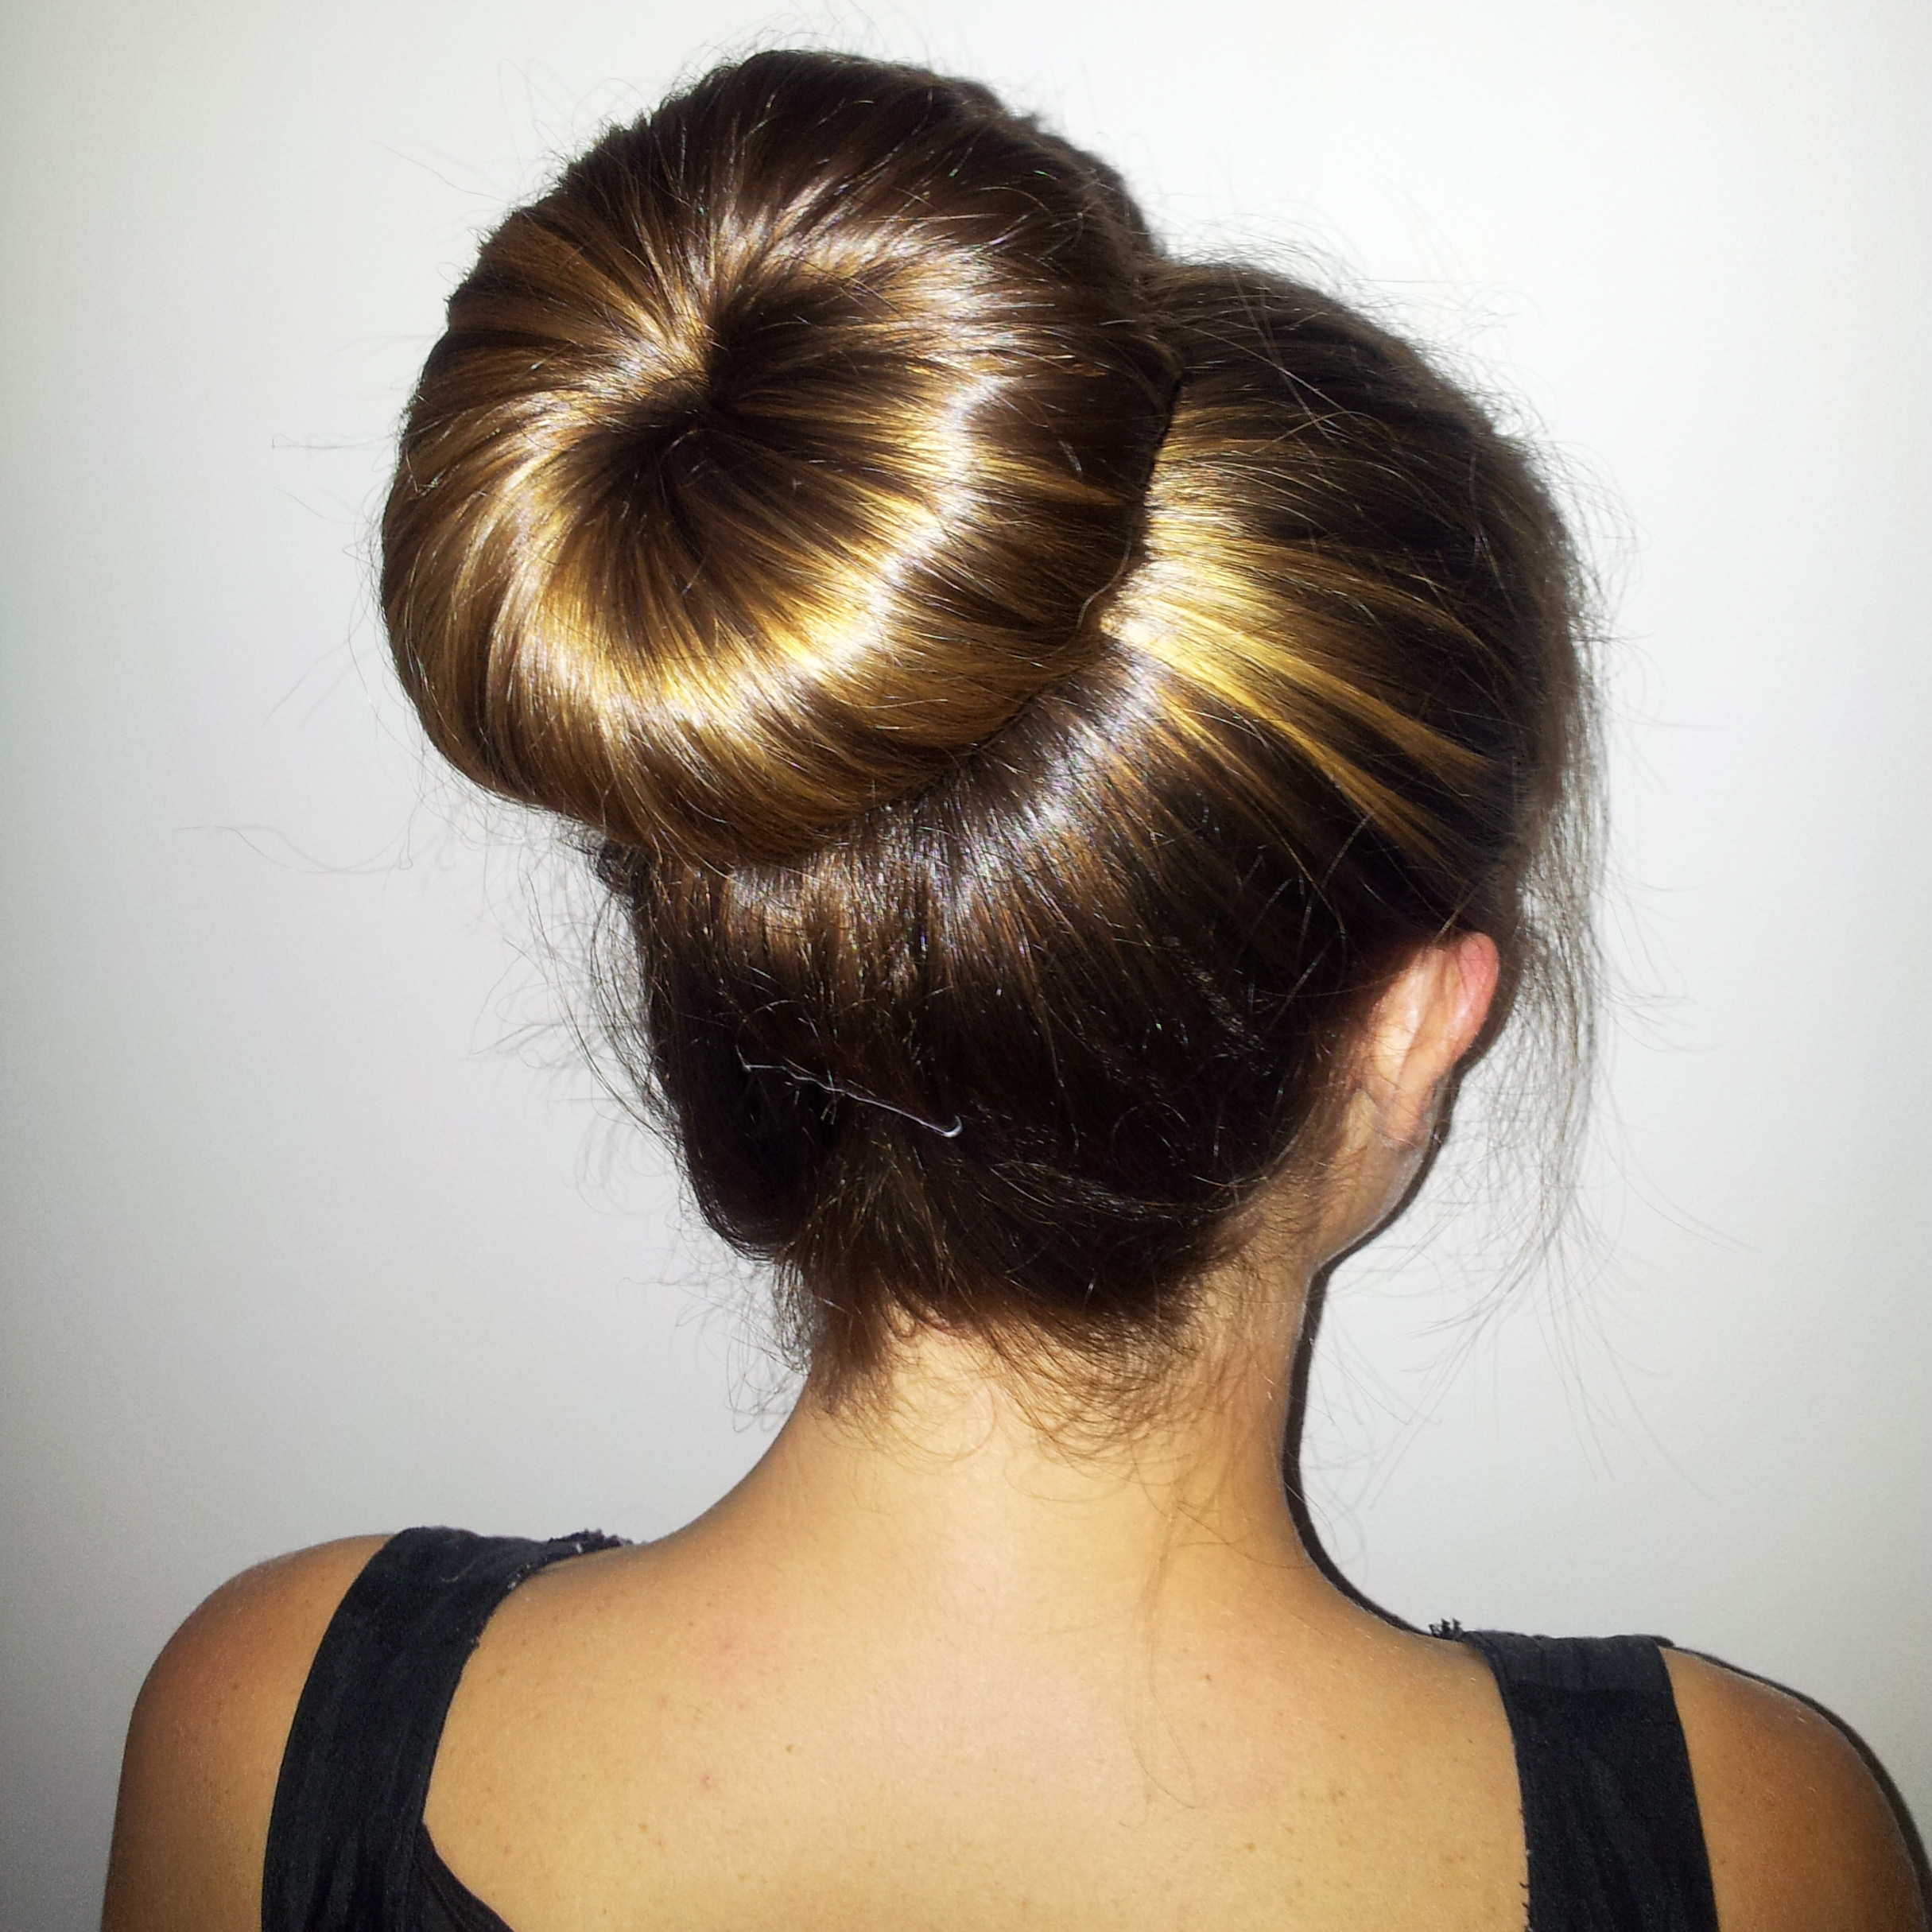 Find great deals on eBay for donut hair bun. Shop with confidence.